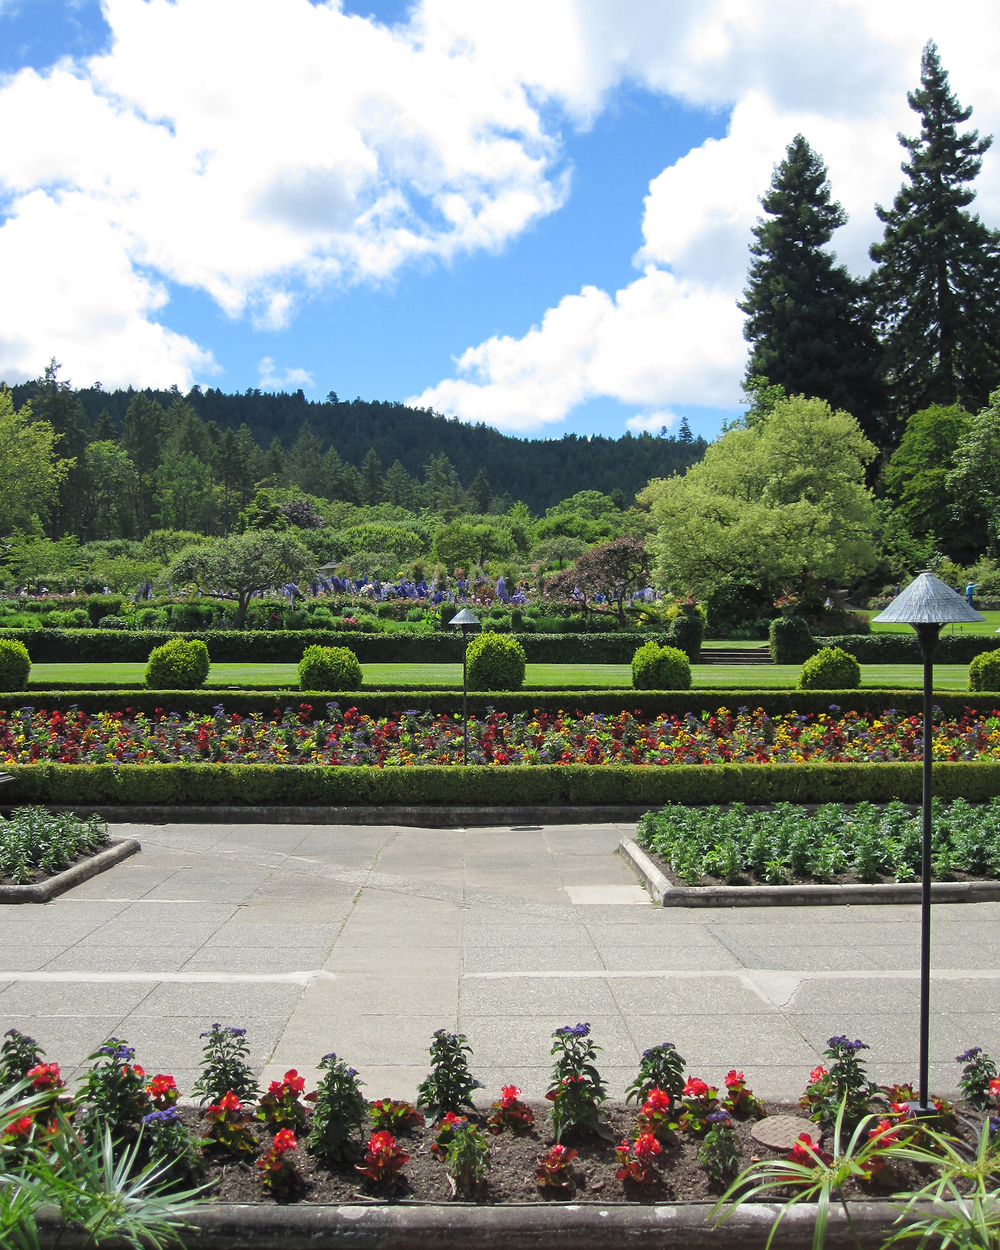 Looking across the Italian Garden, Butchart Gardens in Victoria, B.C.